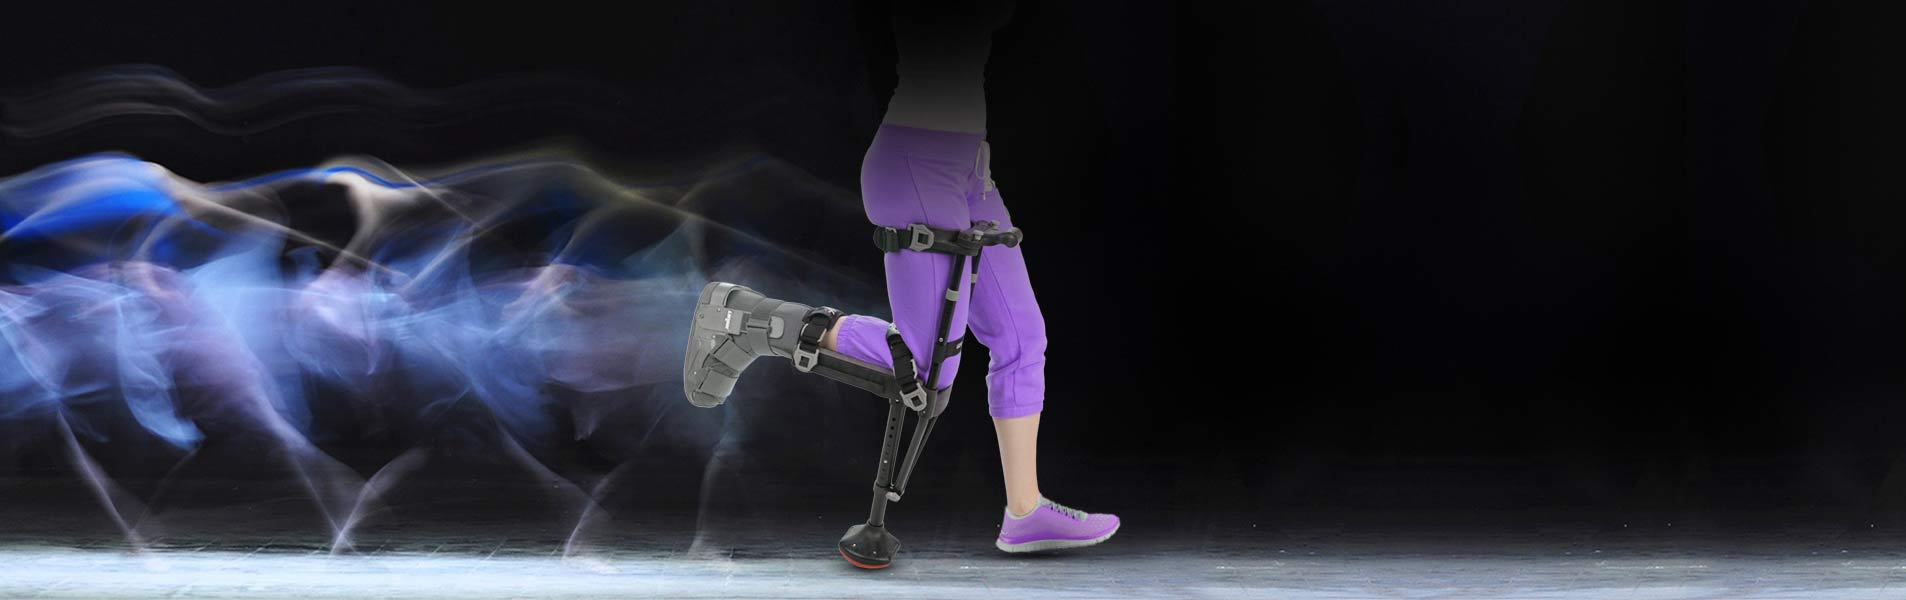 Best Crutches for Walking